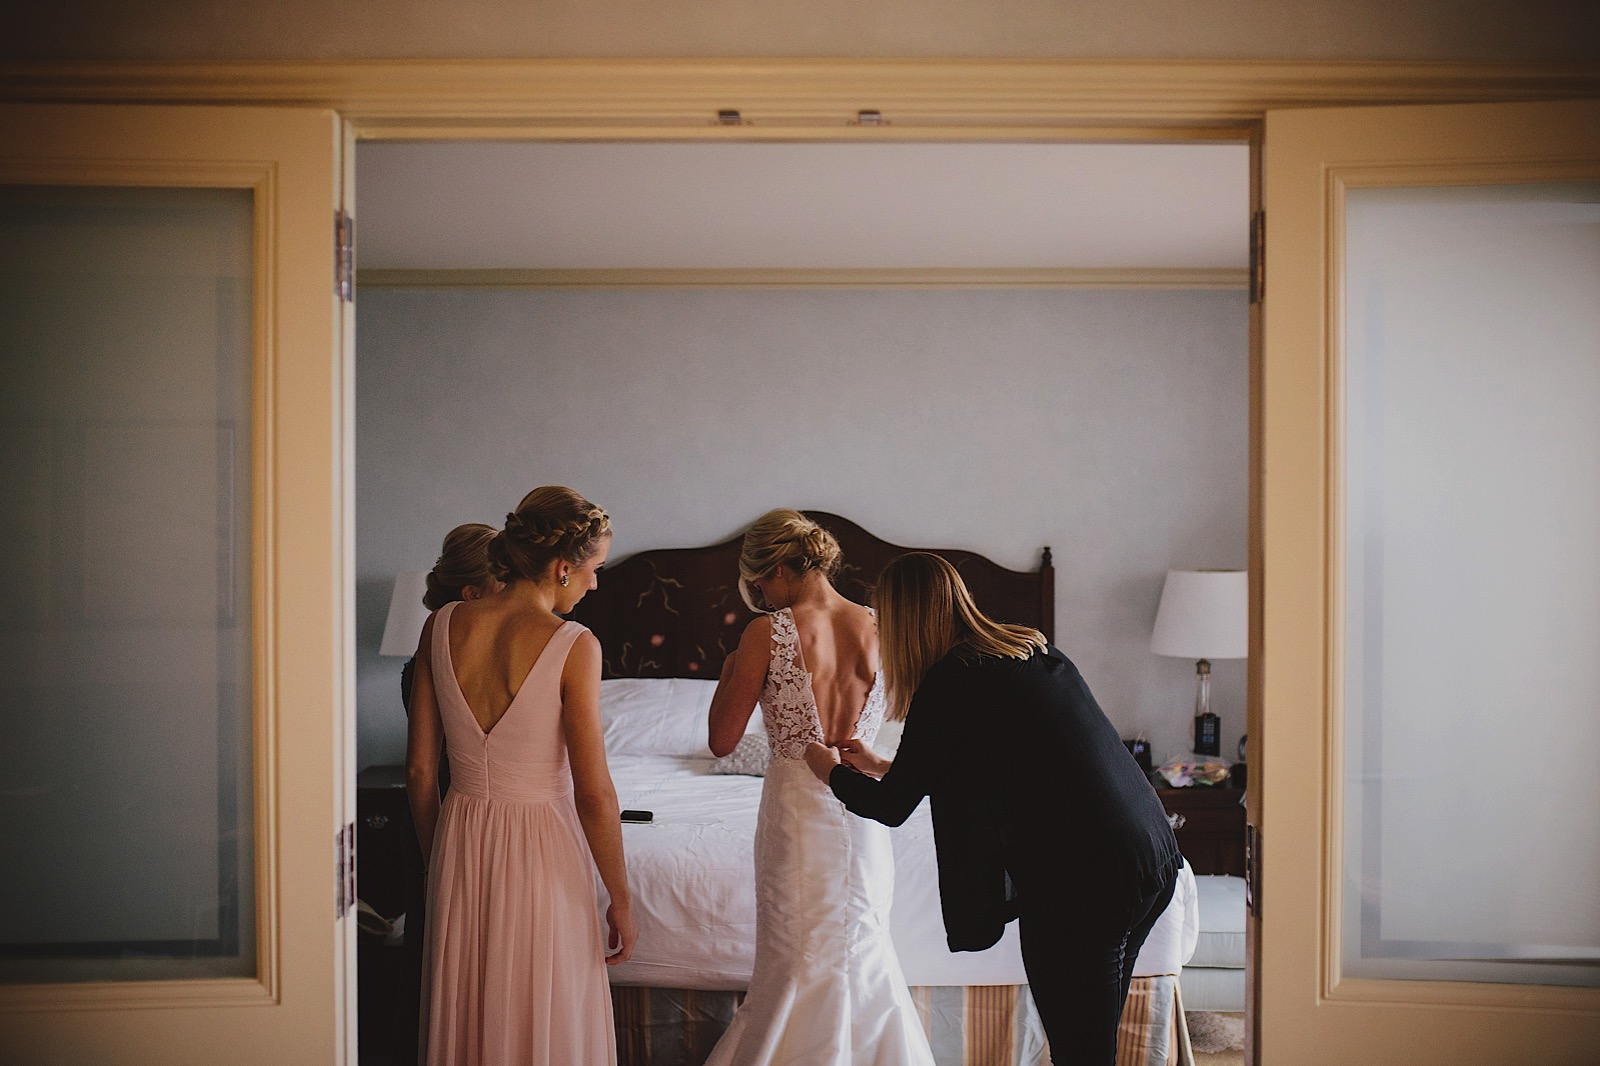 international_wedding_photographers_awake_and_dreaming0033